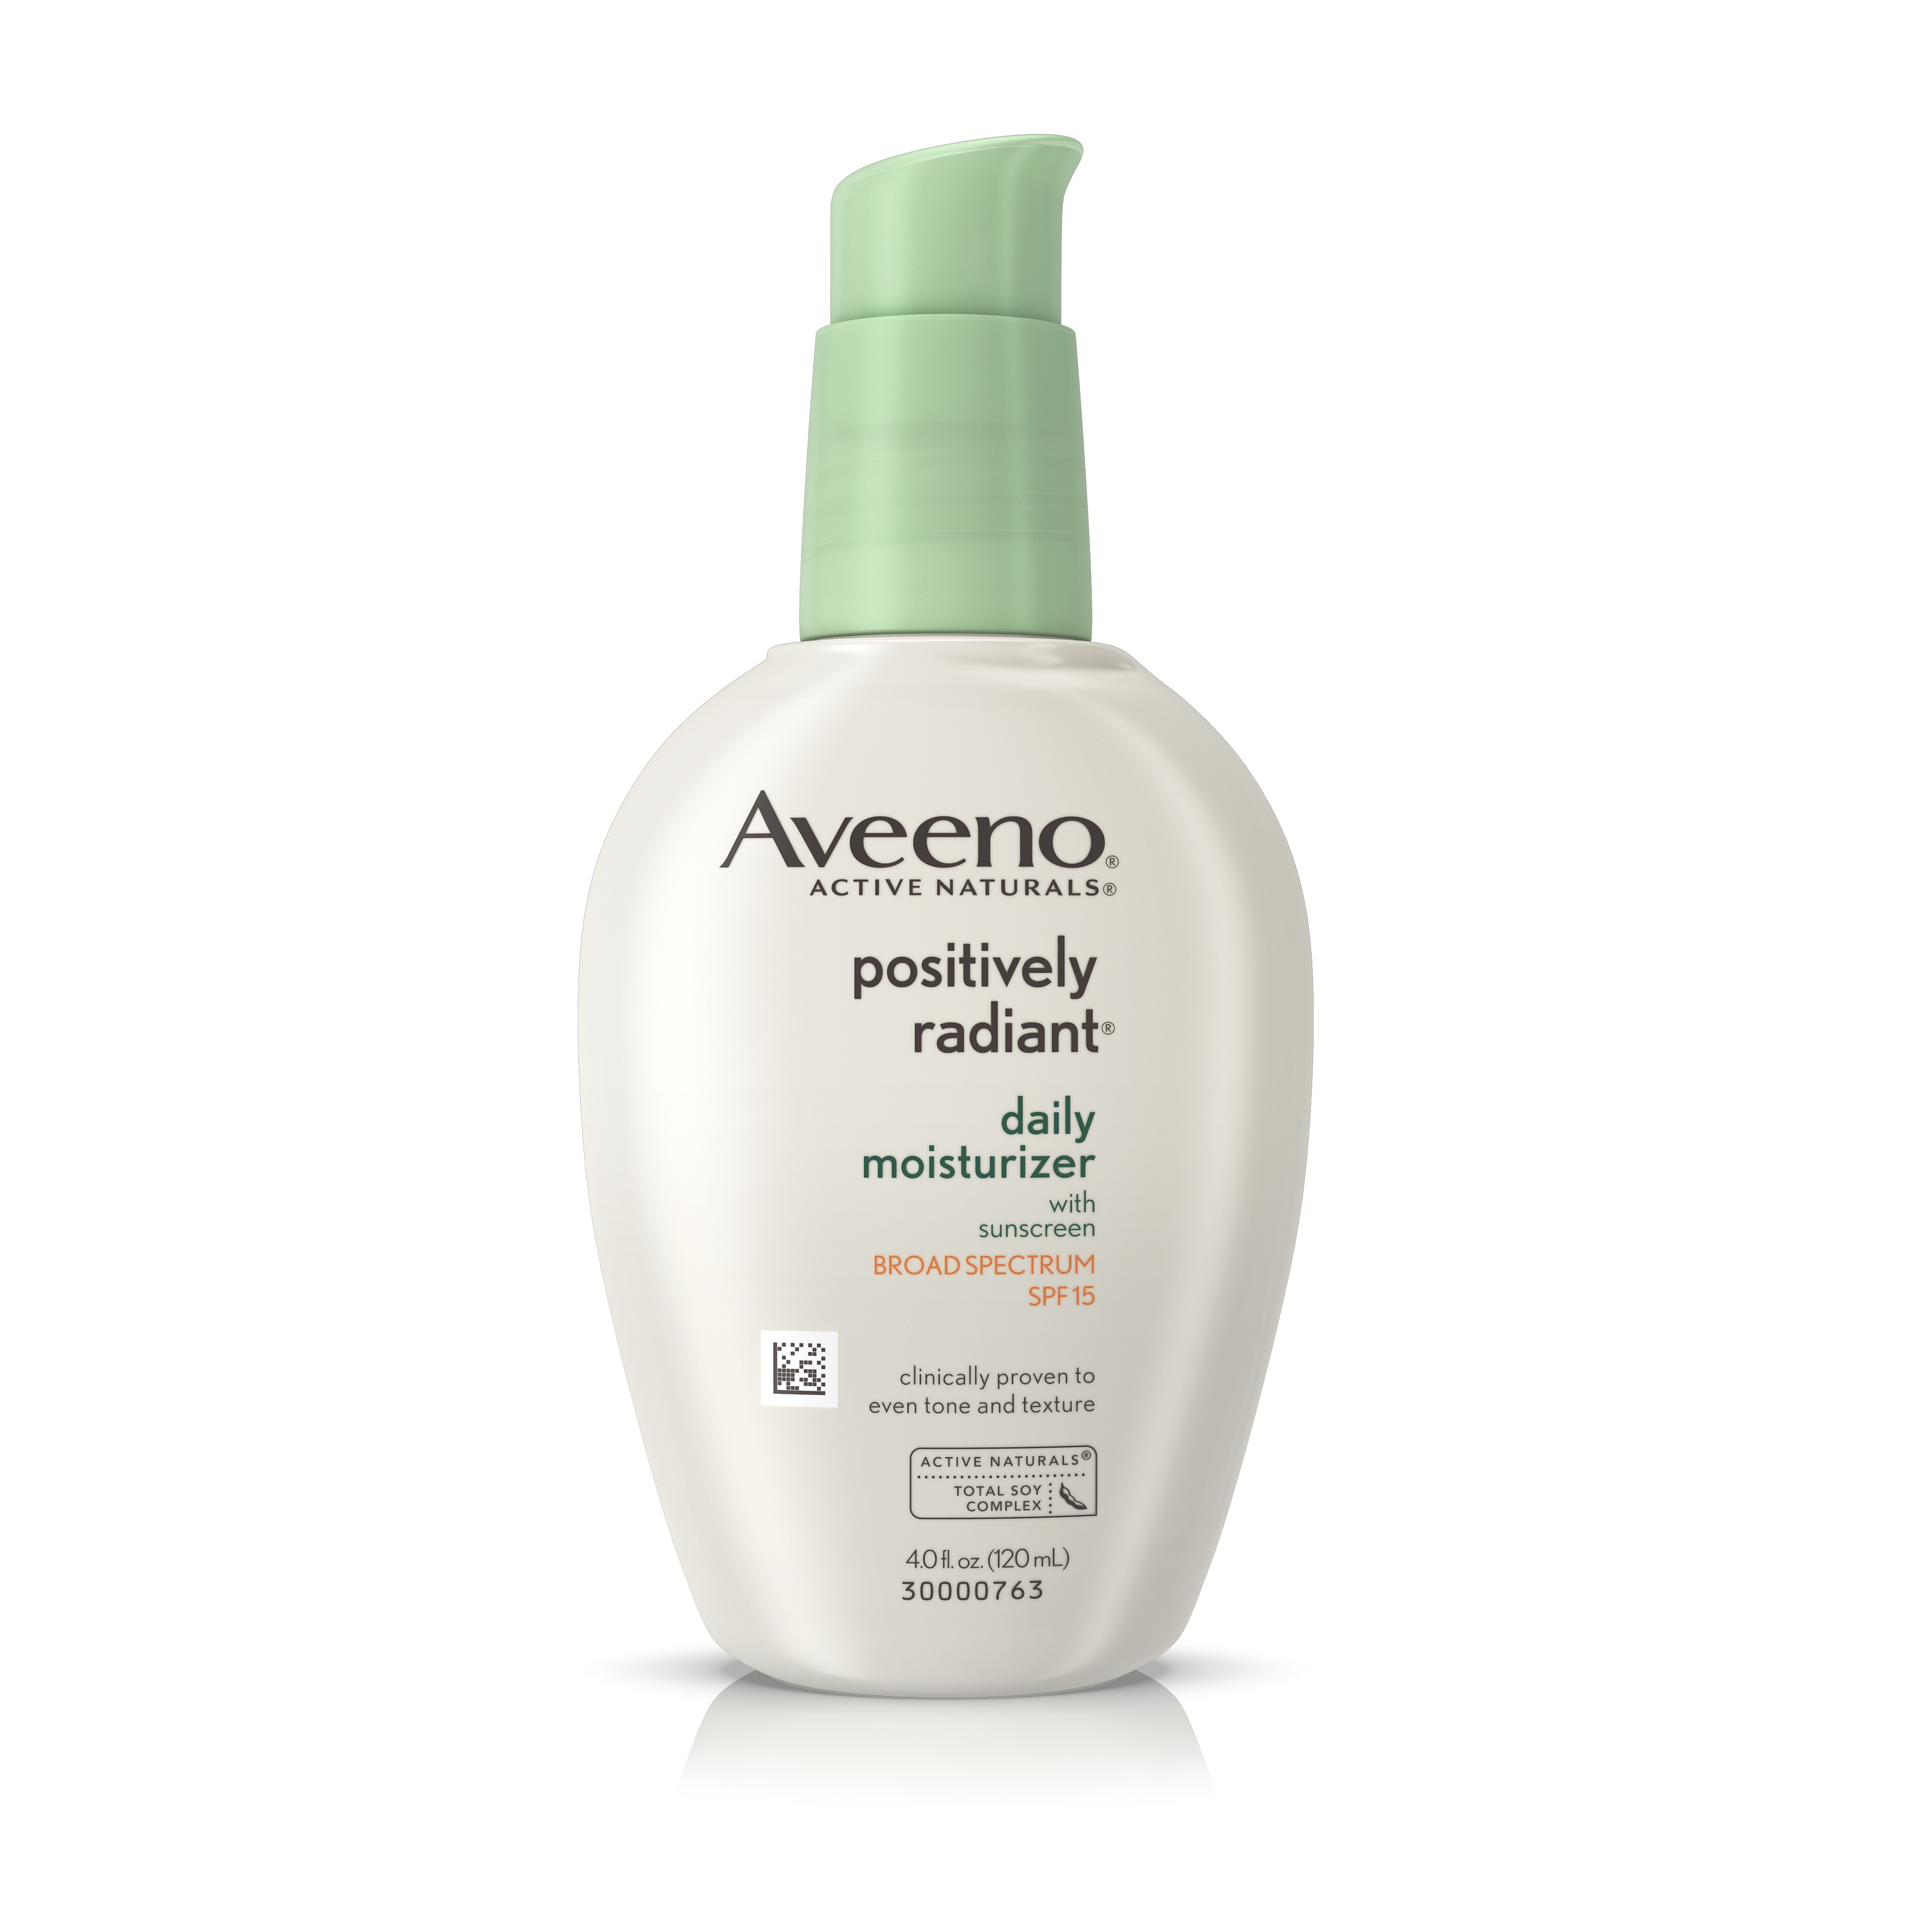 Aveeno Positively Radiant Daily Moisturizer With Sunscreen Broad Spectrum Spf 15, 4 Oz - Walmart.com